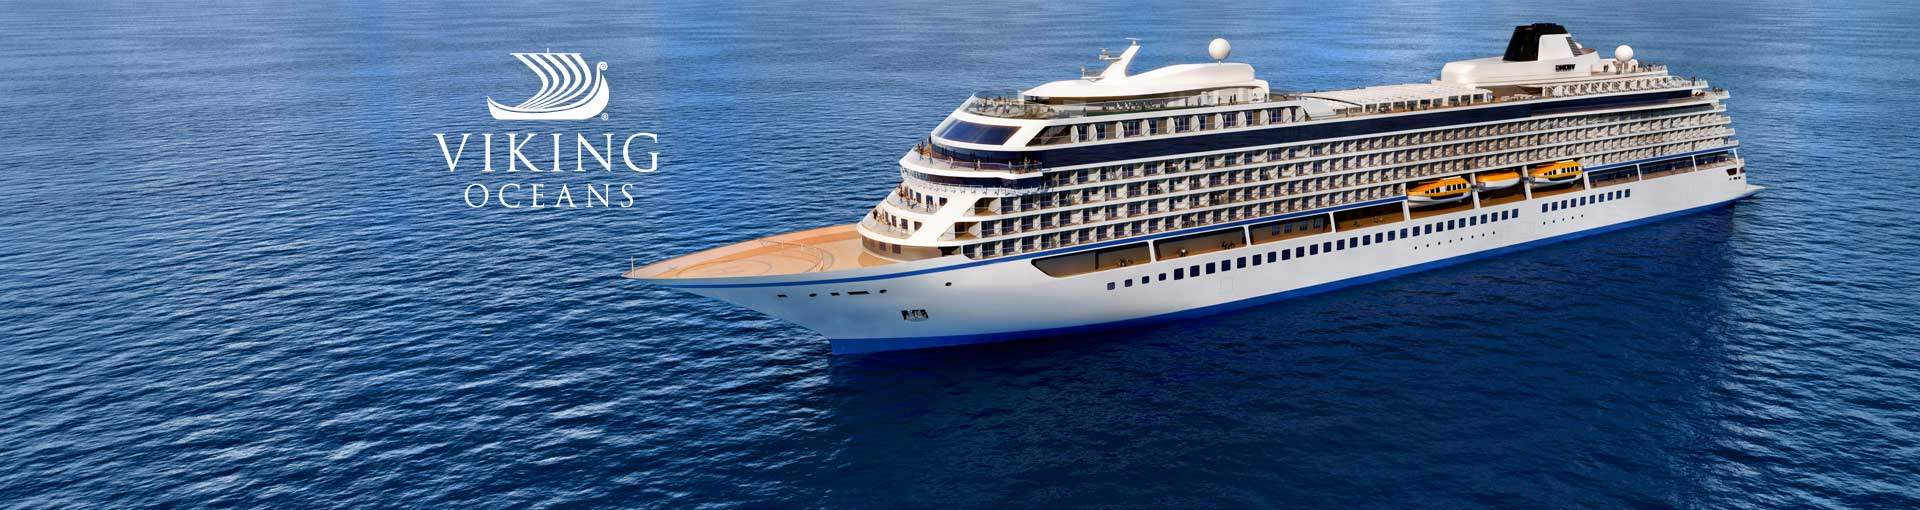 Viking Oceans Cruises 2018 And 2019 Cruise Deals